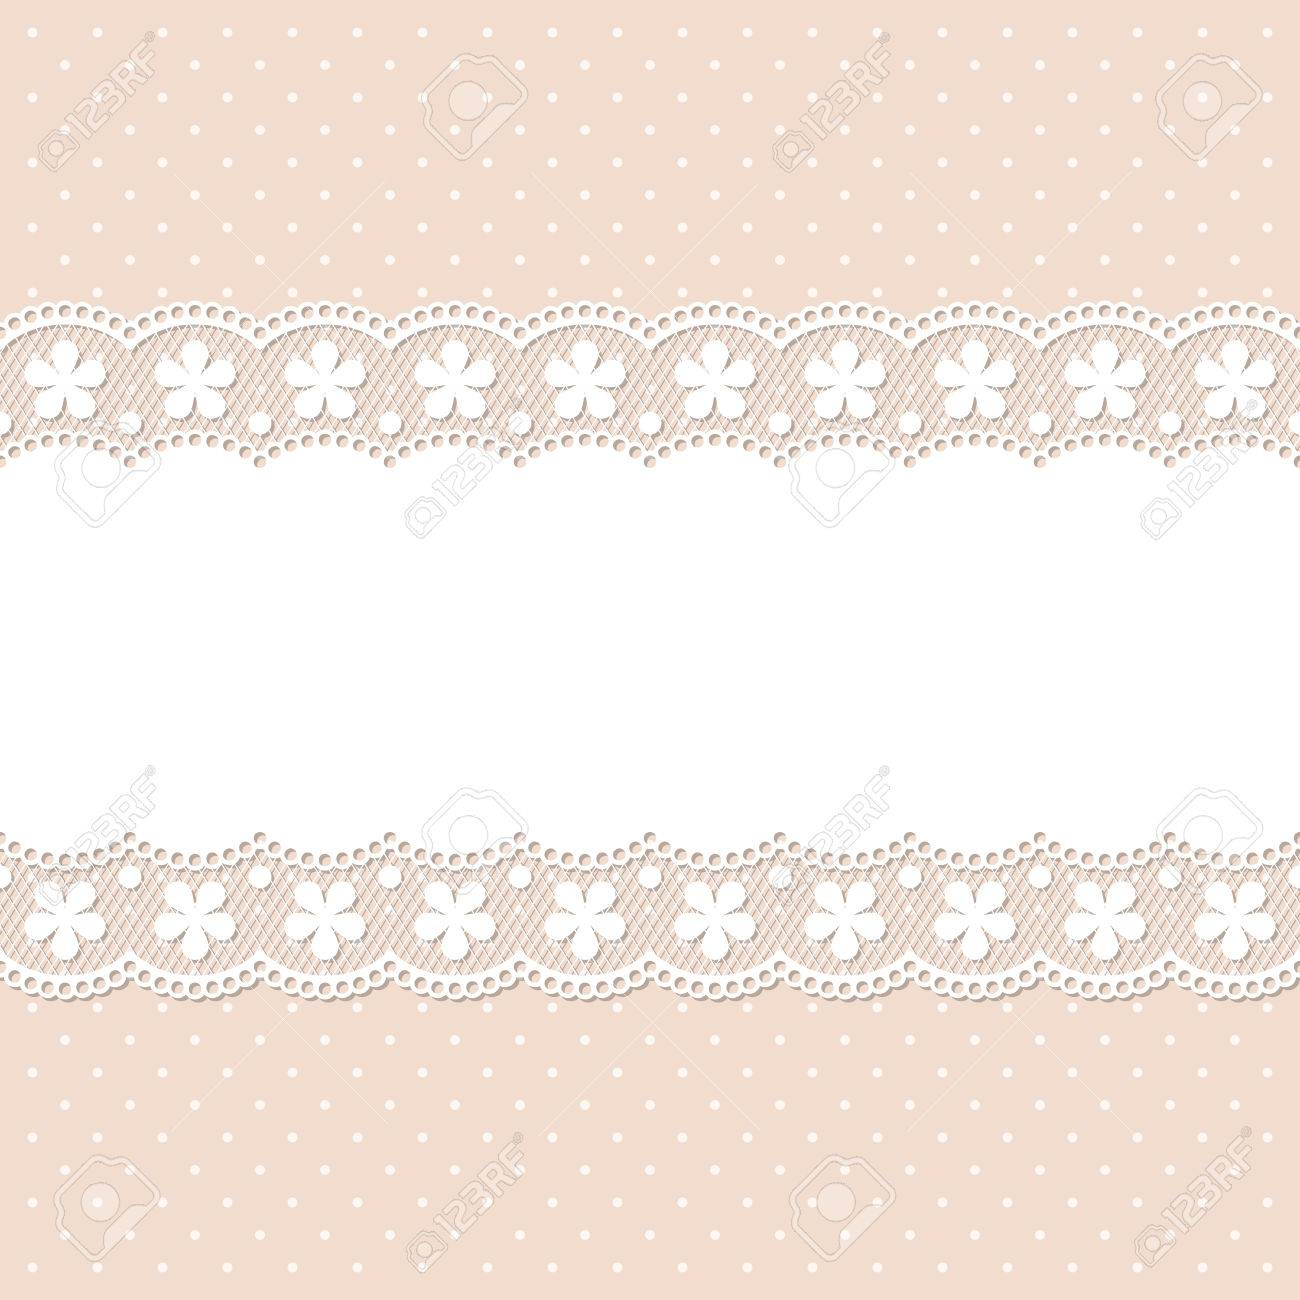 retro lace background template for wedding invitation or greeting